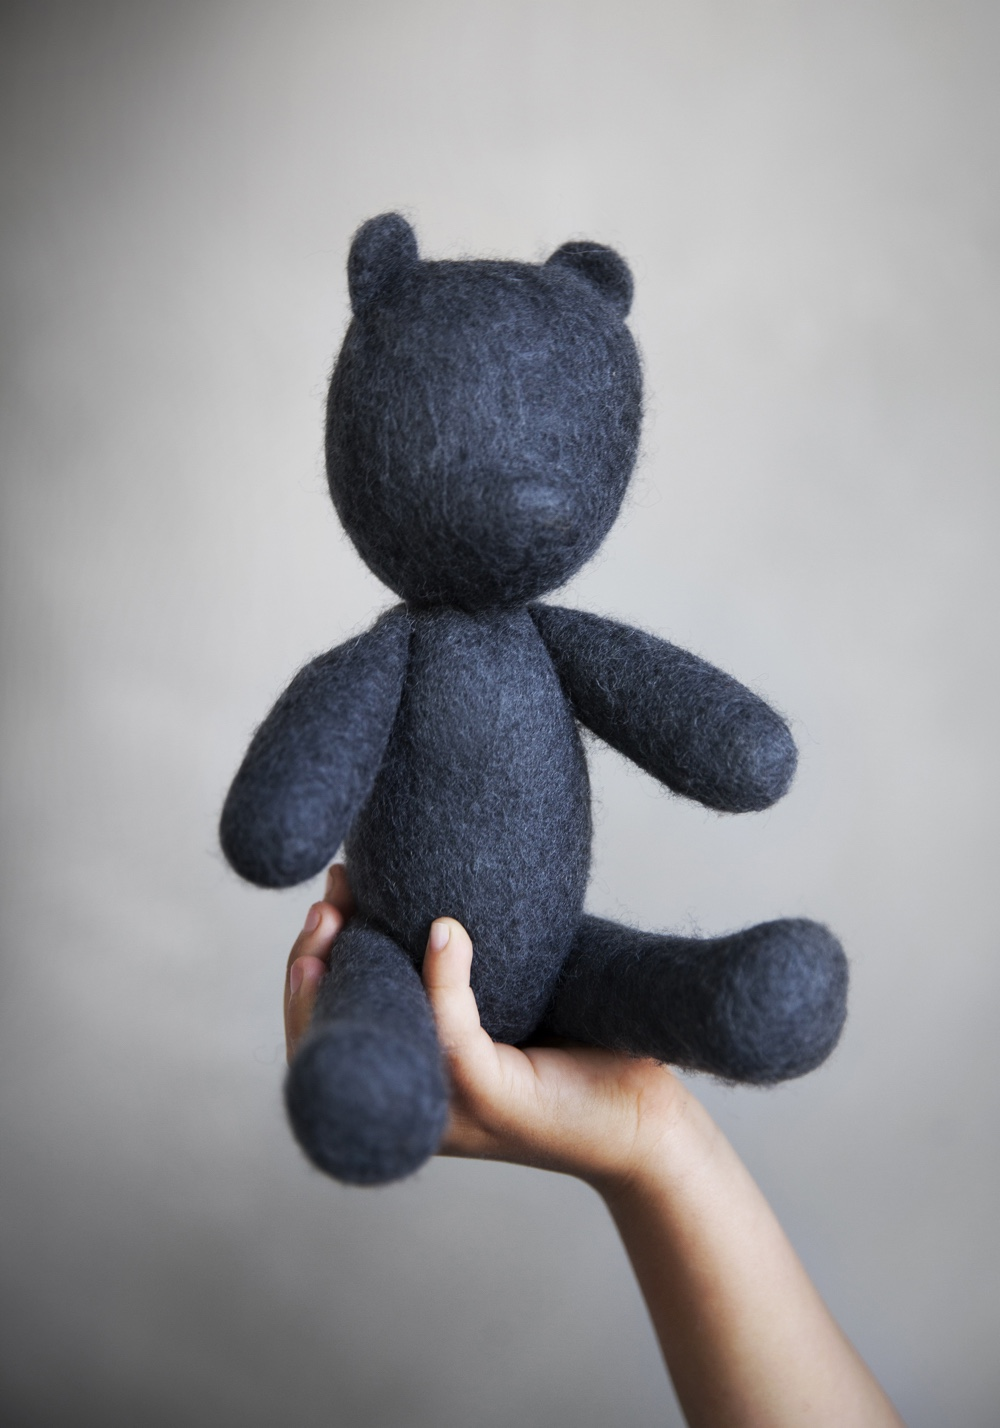 Minimalist teddy bear